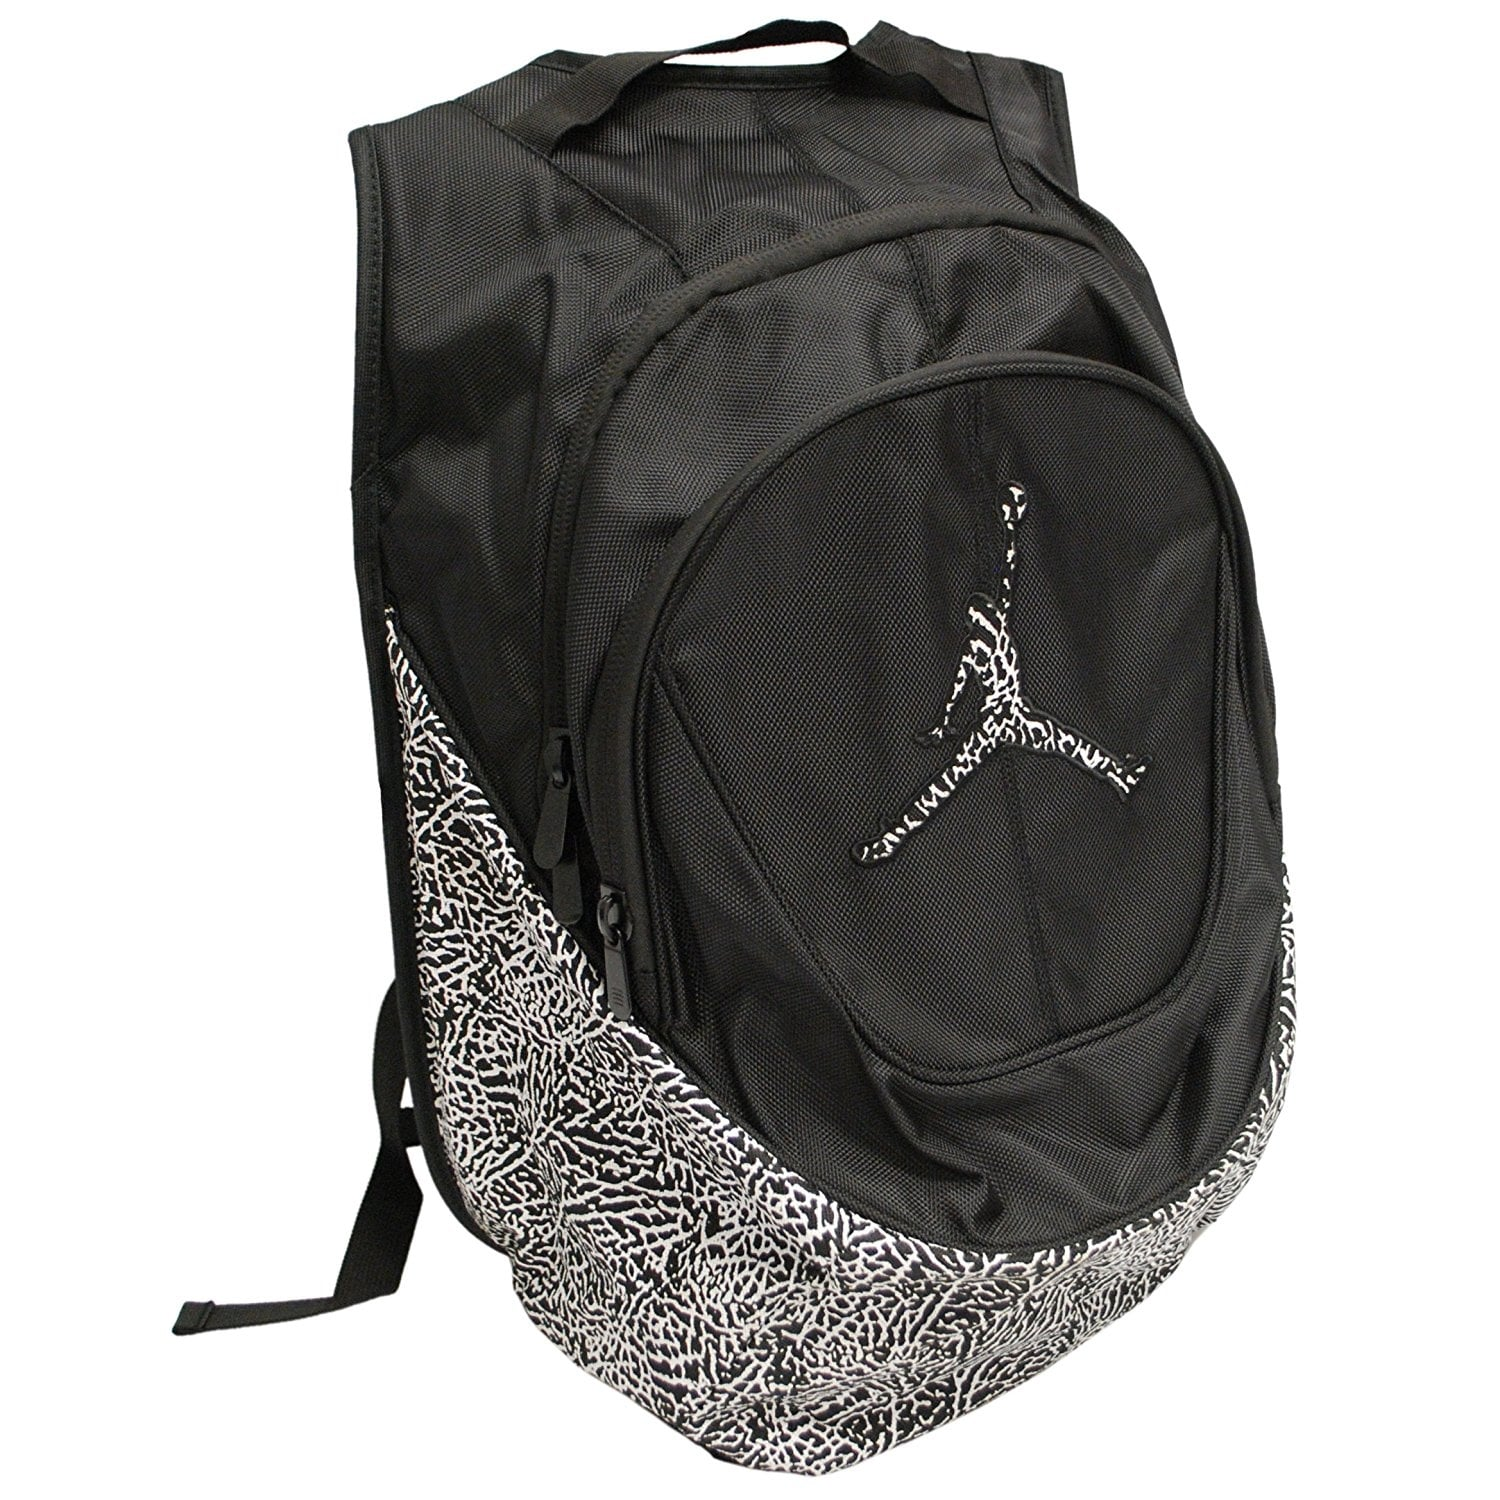 557d2965851ee0 Shop Nike Jordan Jumpman Elementary Elephant Print Students Large Backpack  with Laptop Sleeve 9A1414 - Free Shipping On Orders Over  45 - Overstock -  ...